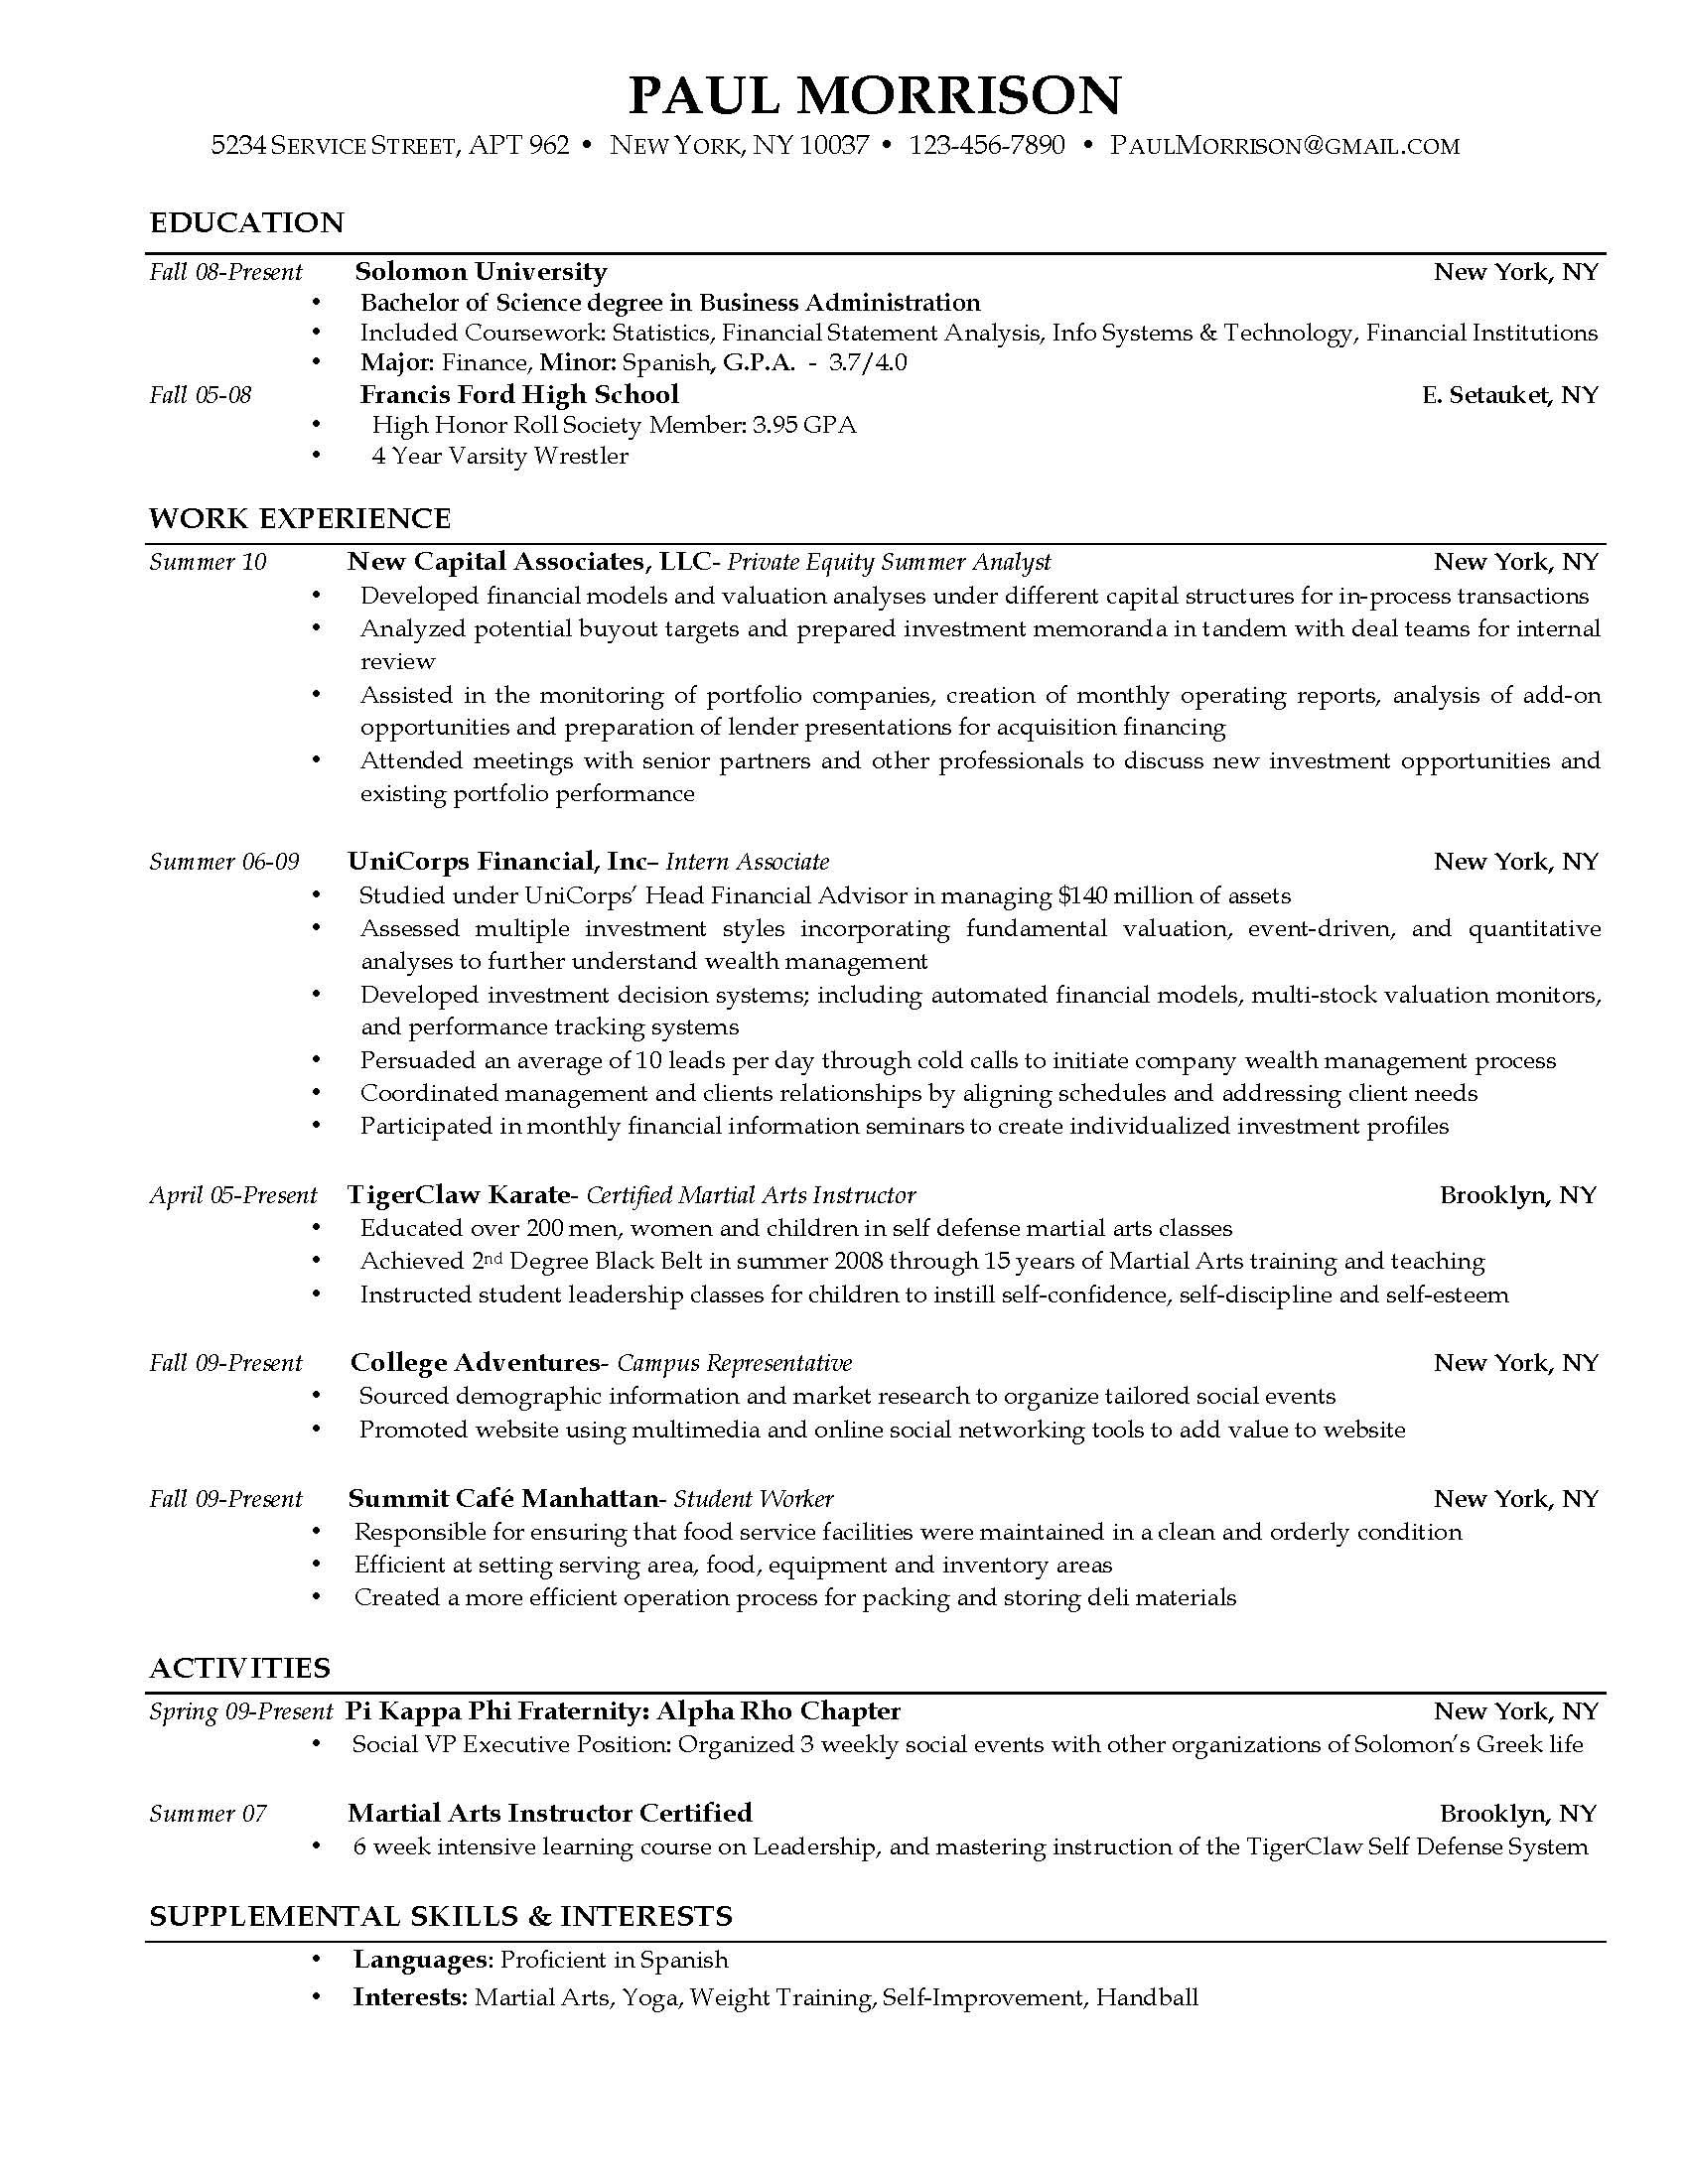 Attractive Sample Curriculum Vitae Resume Examples To College Student Resume Samples